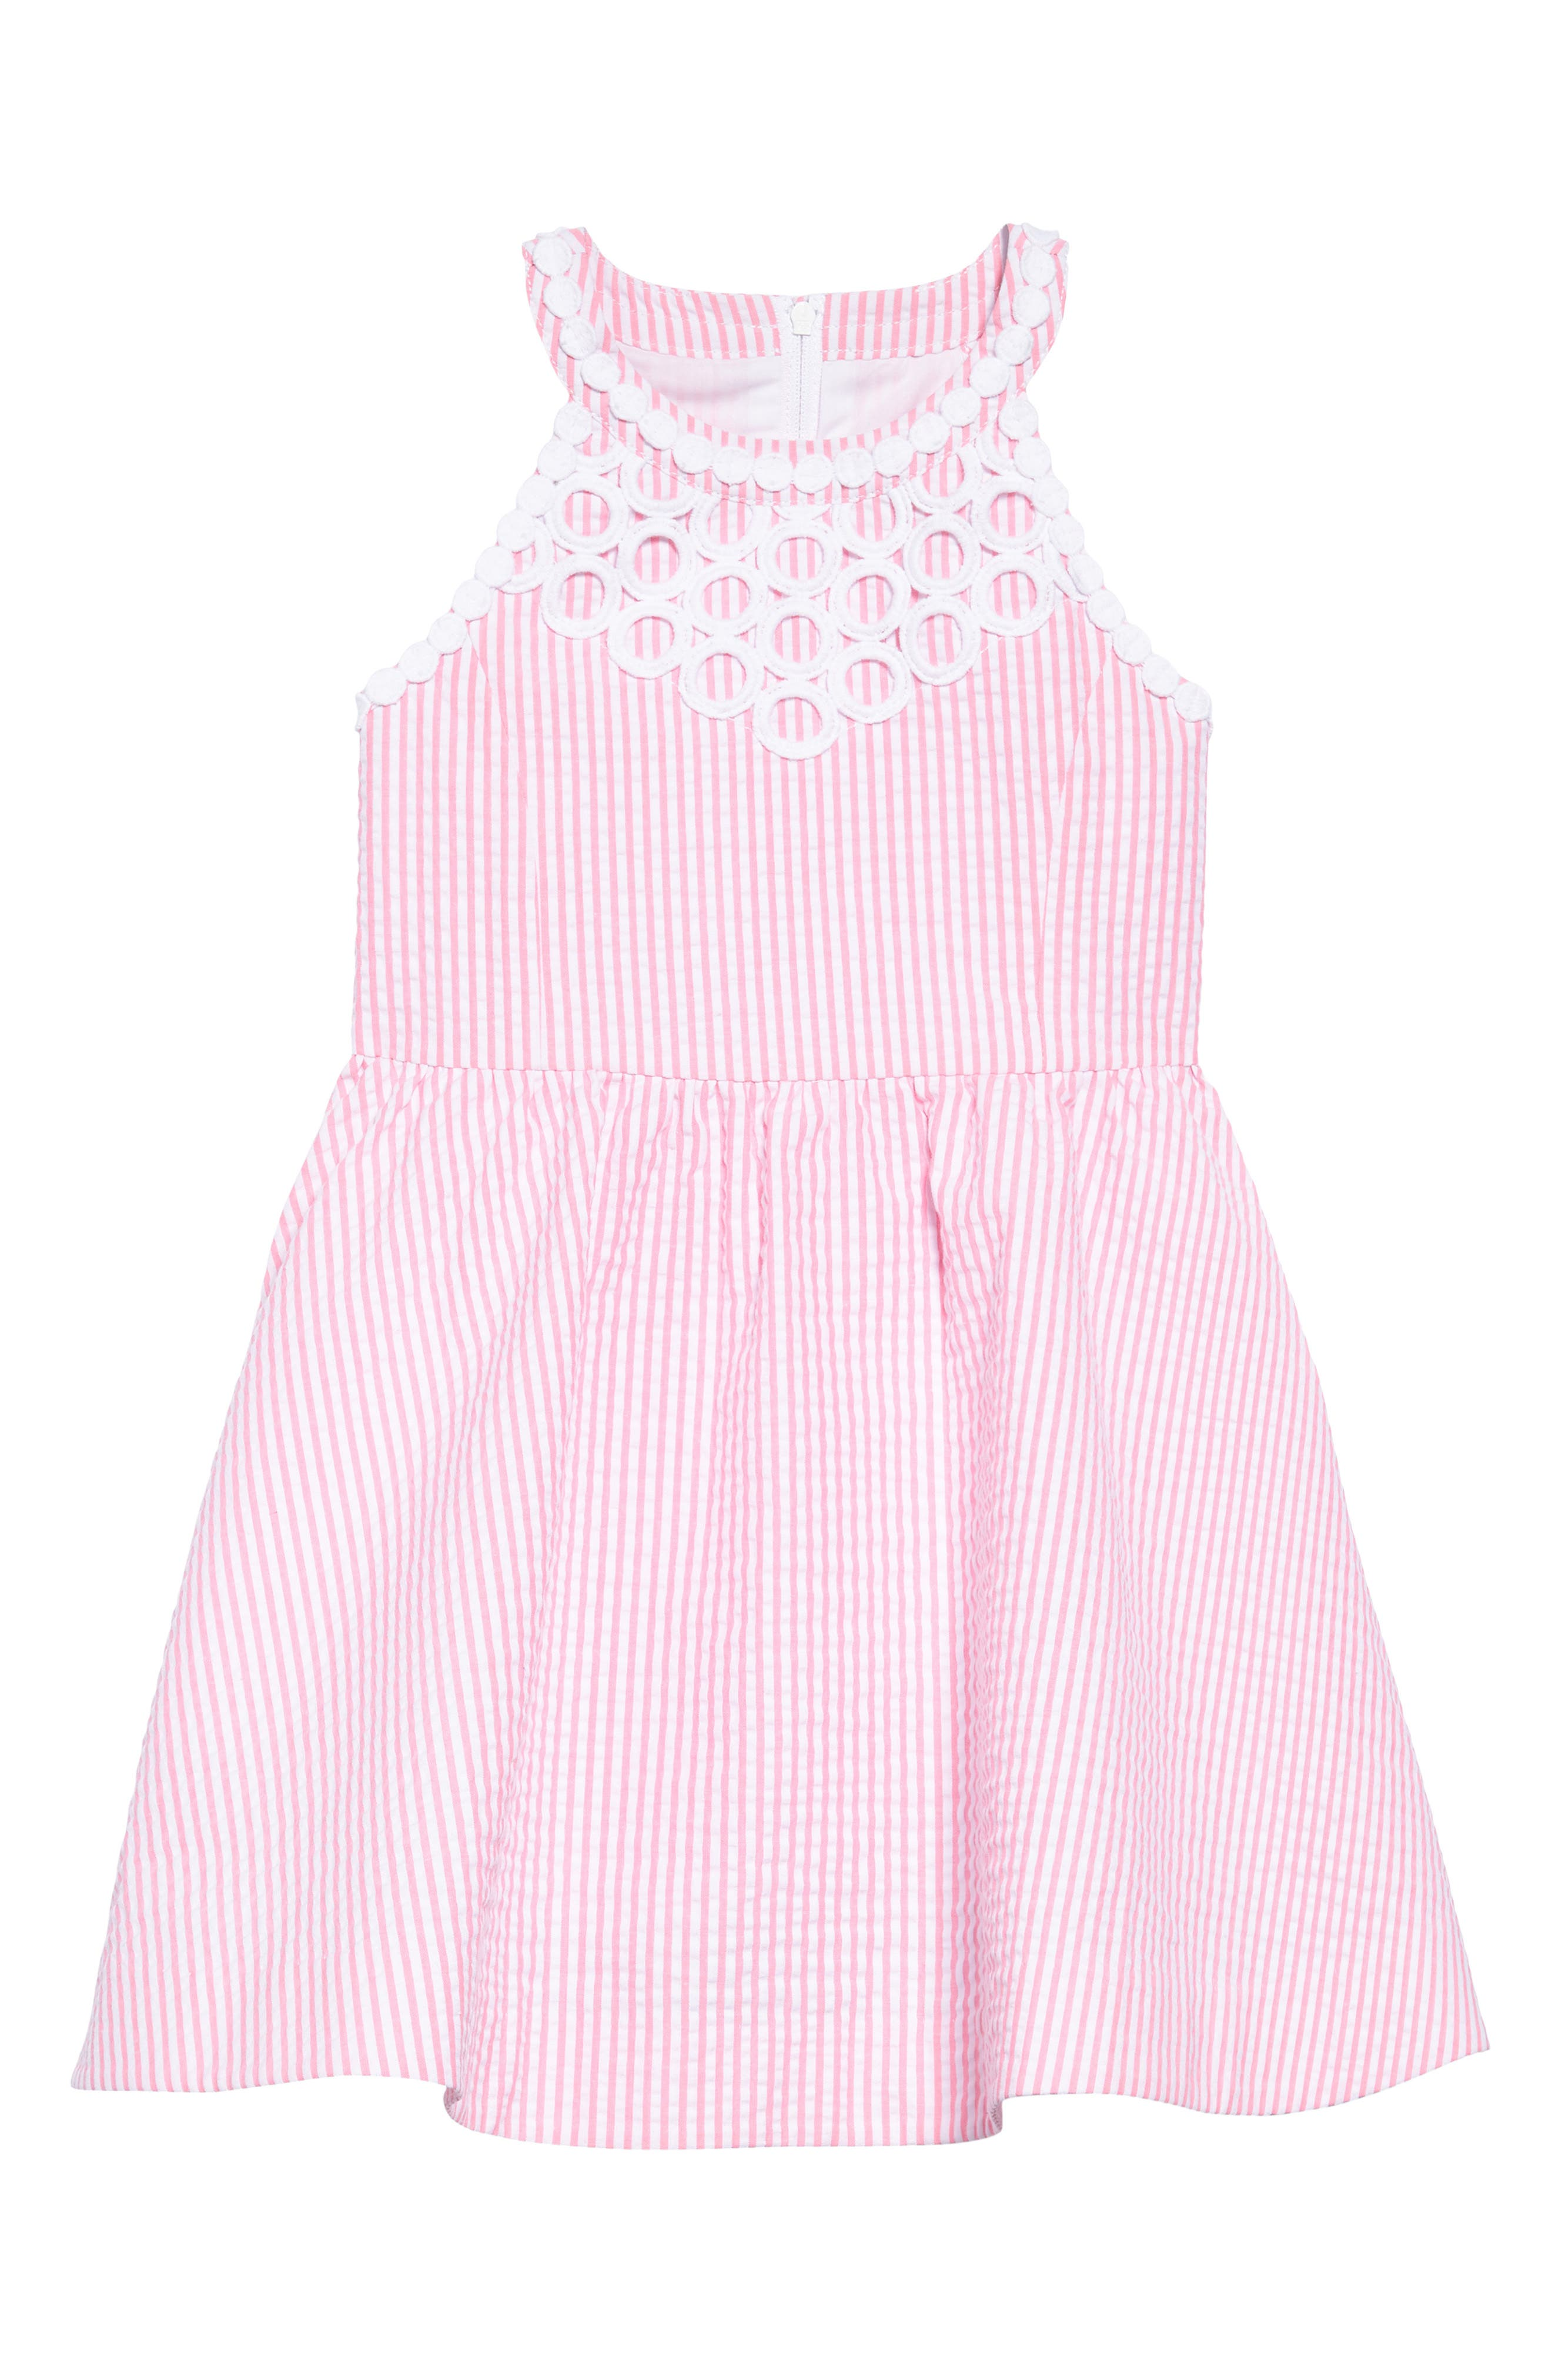 Kinley Fit & Flare Dress,                             Main thumbnail 1, color,                             Pink Cosmo Yarn Dyed Stripe